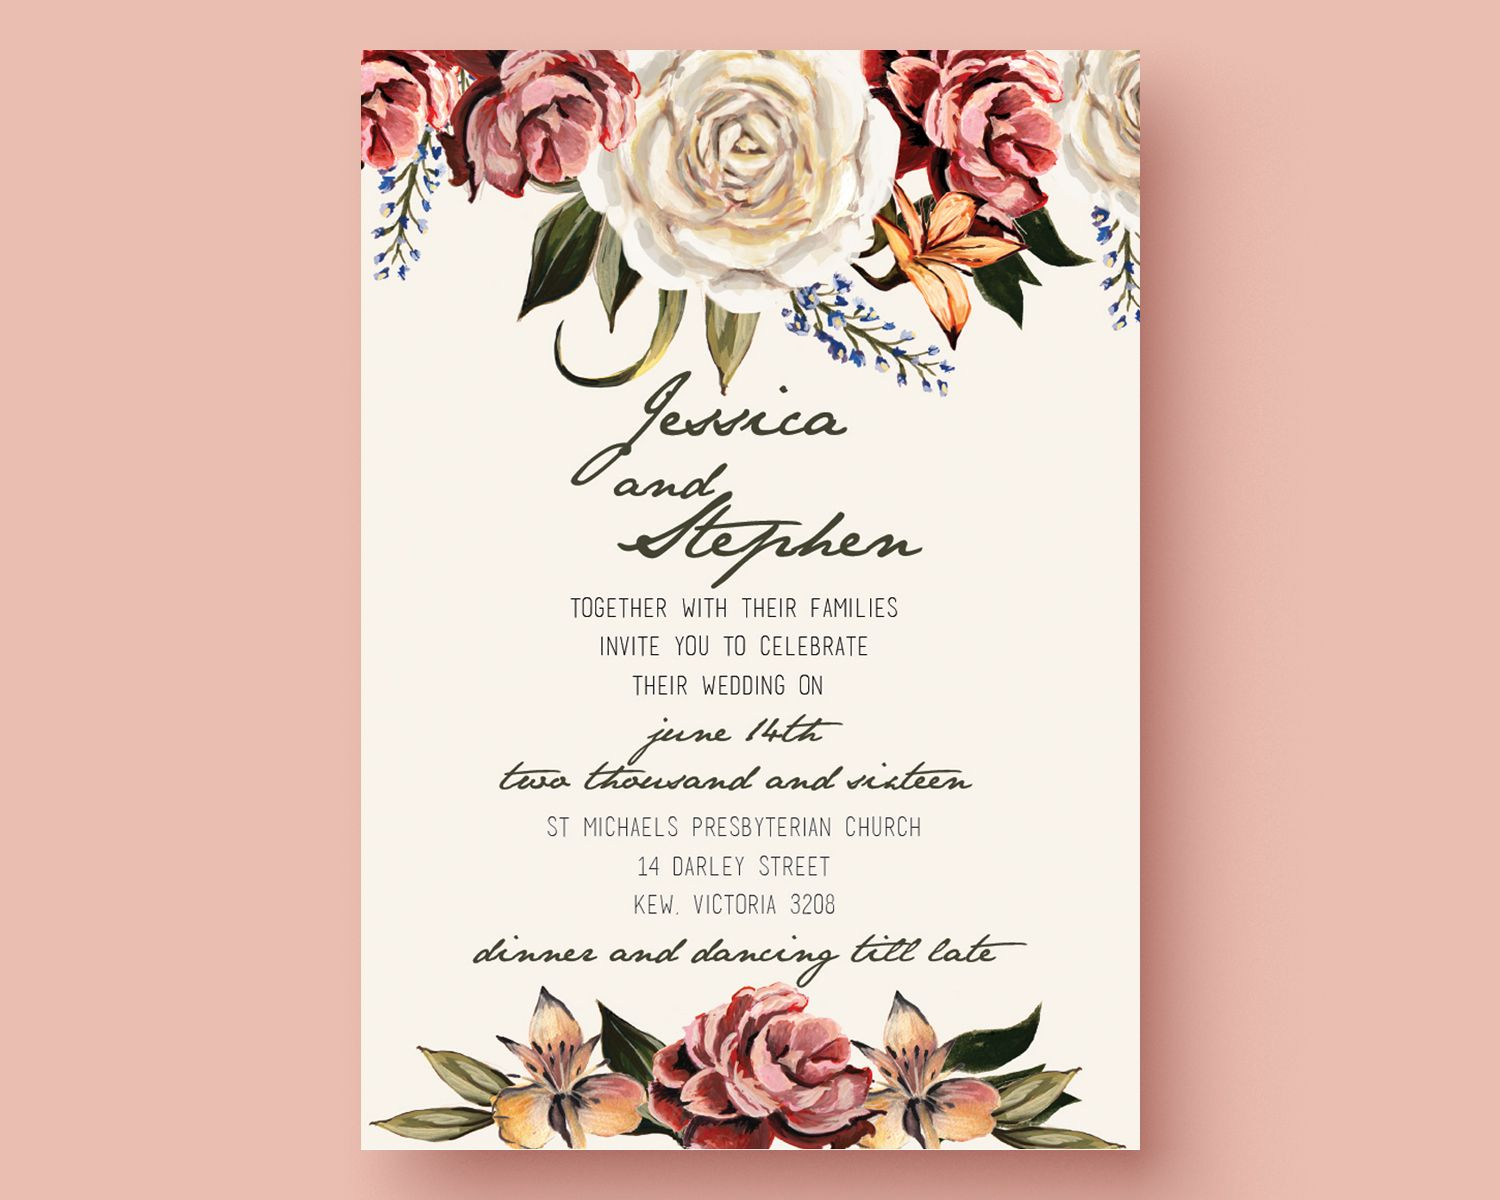 Digital Wedding Invitation Templates • Business Template Ideas